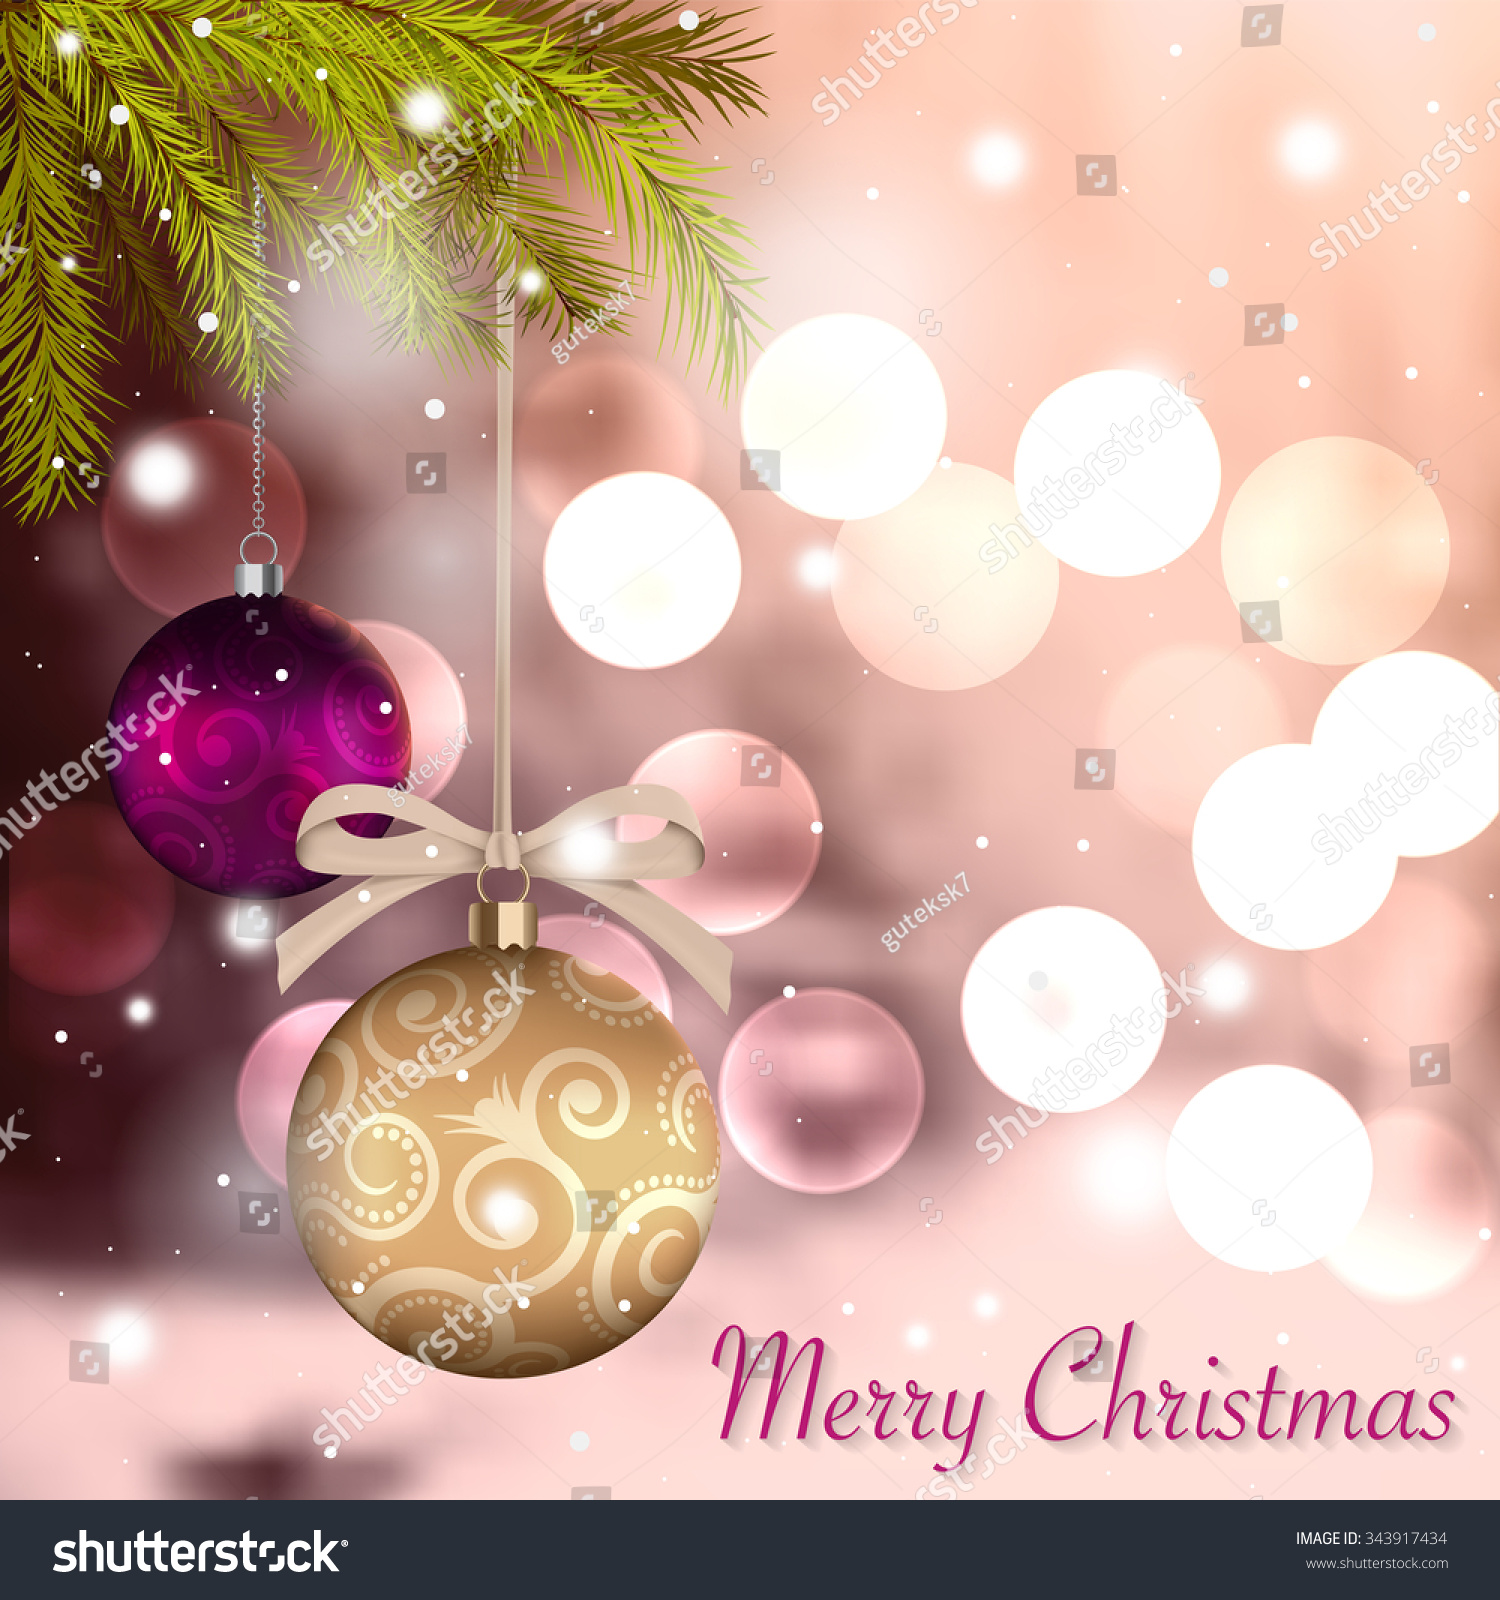 Merry christmas holidays card gold color stock vector 343917434 merry christmas holidays card in gold color with colorful baubles and christmas tree twigs against rose kristyandbryce Image collections